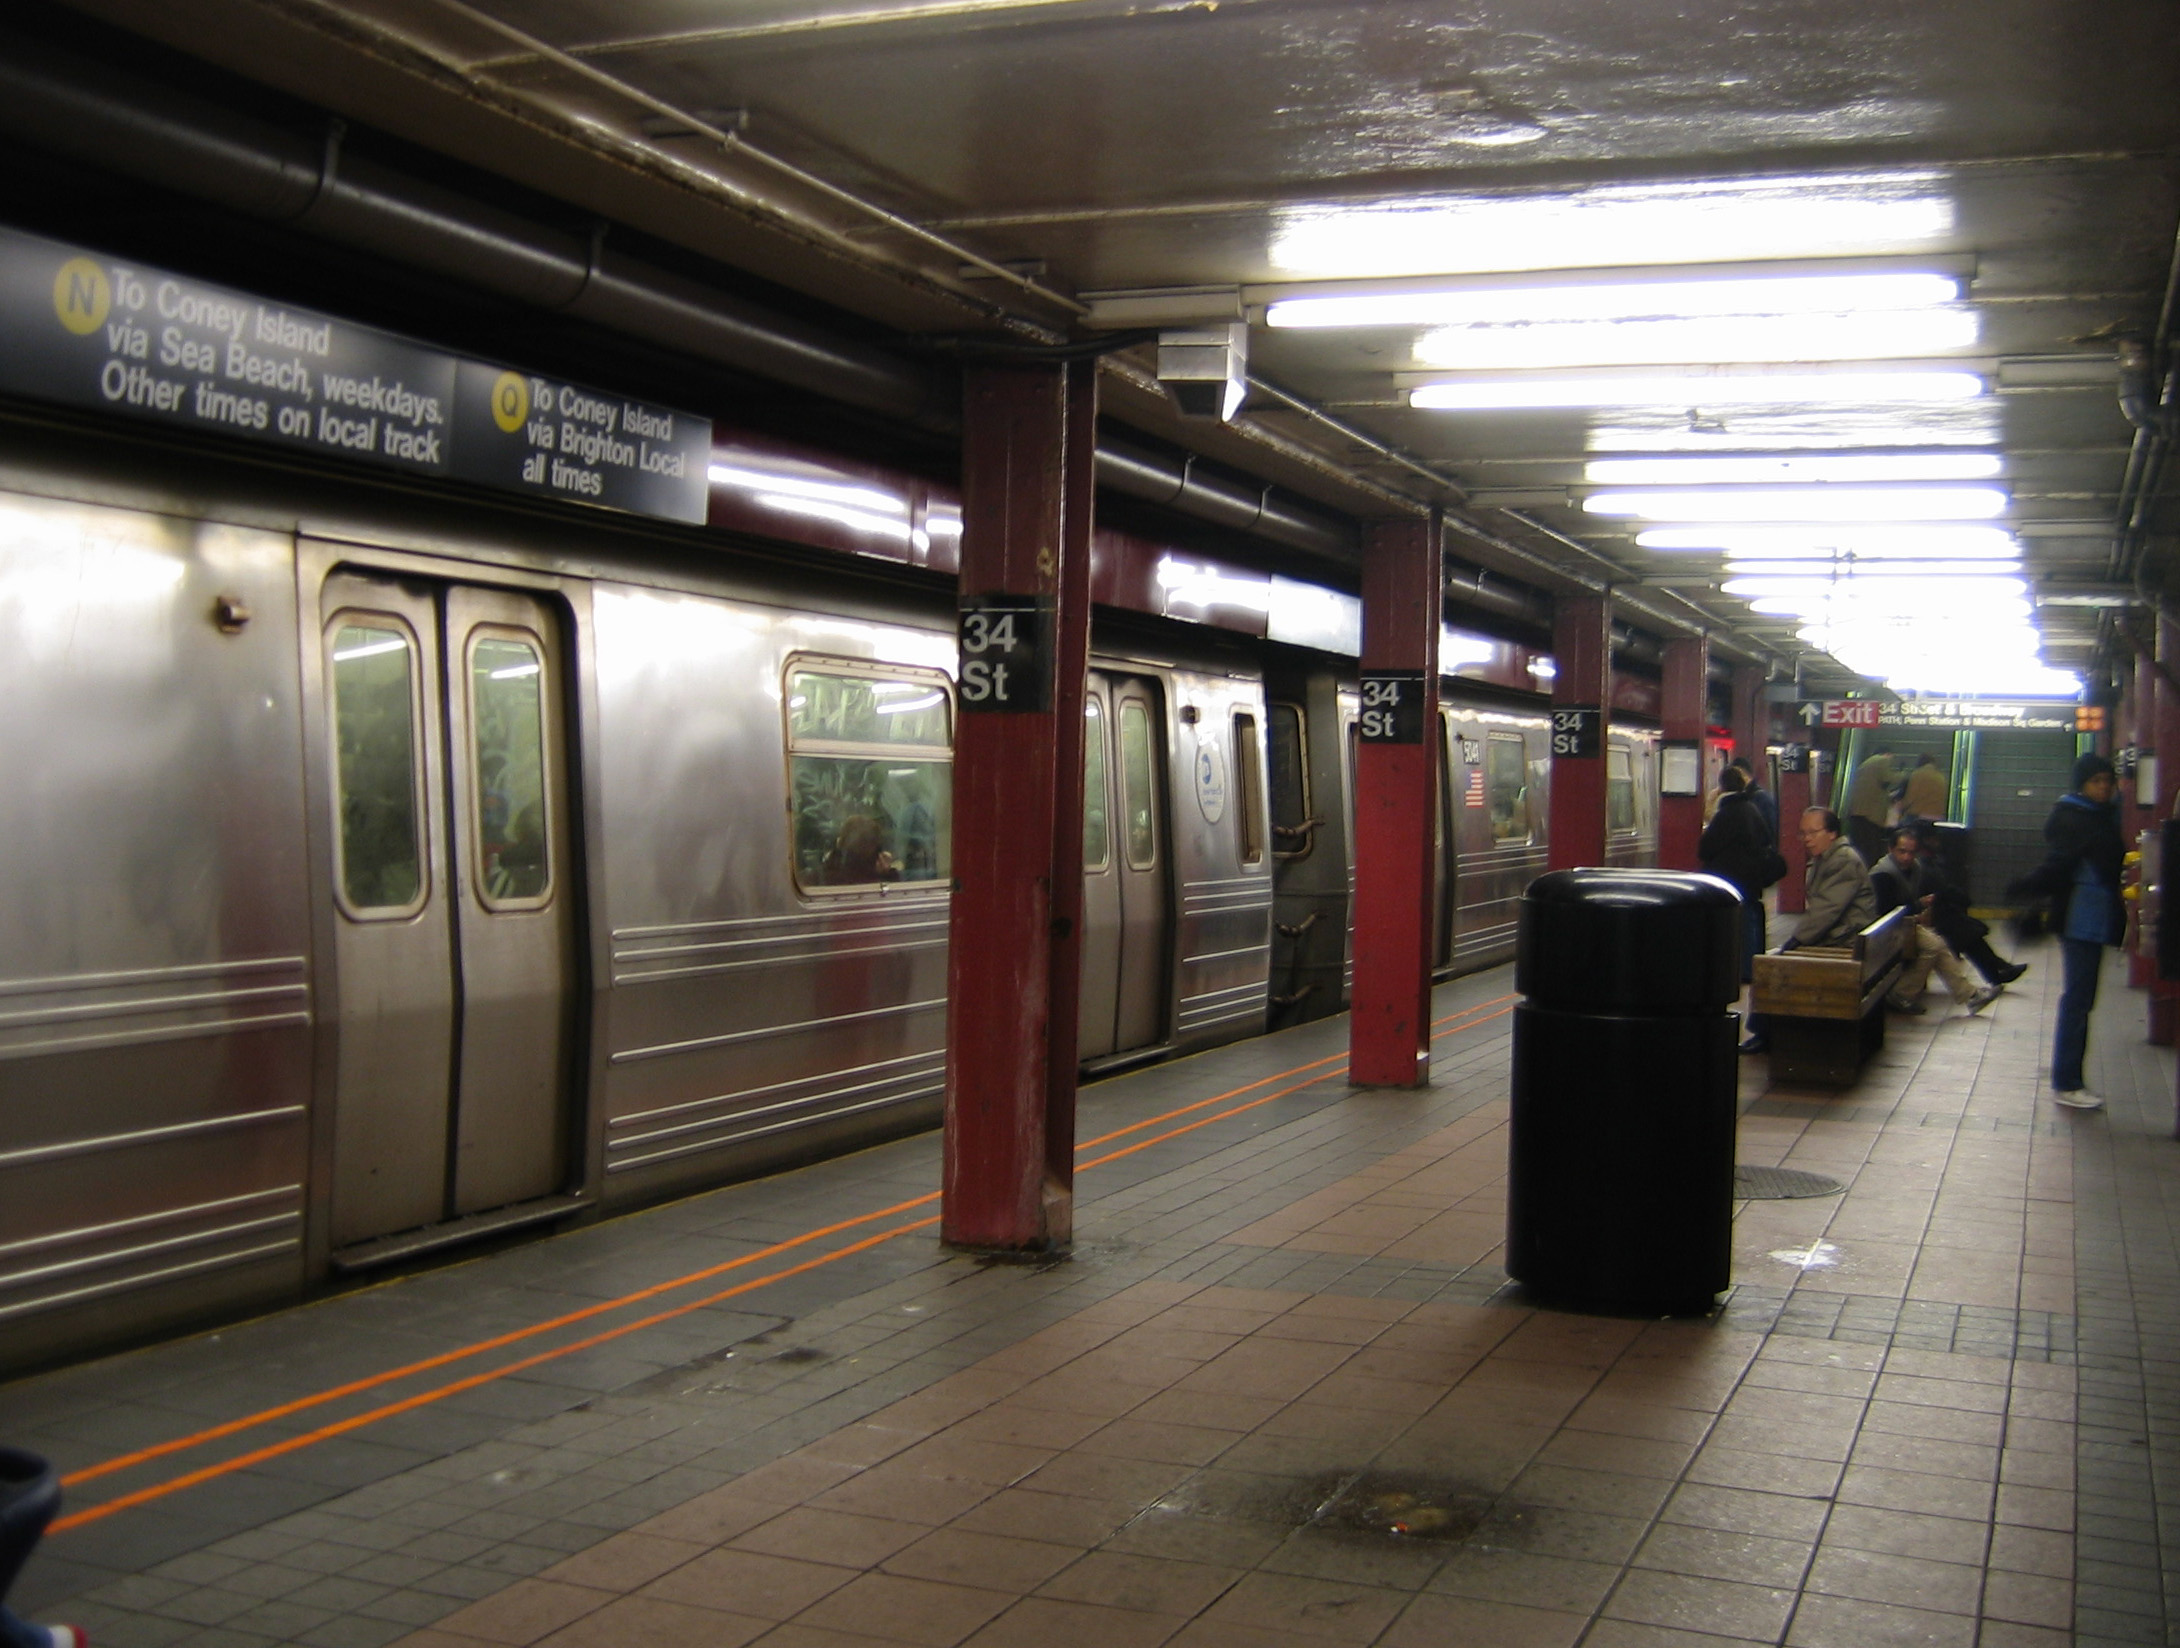 Subway station in yonkers ny